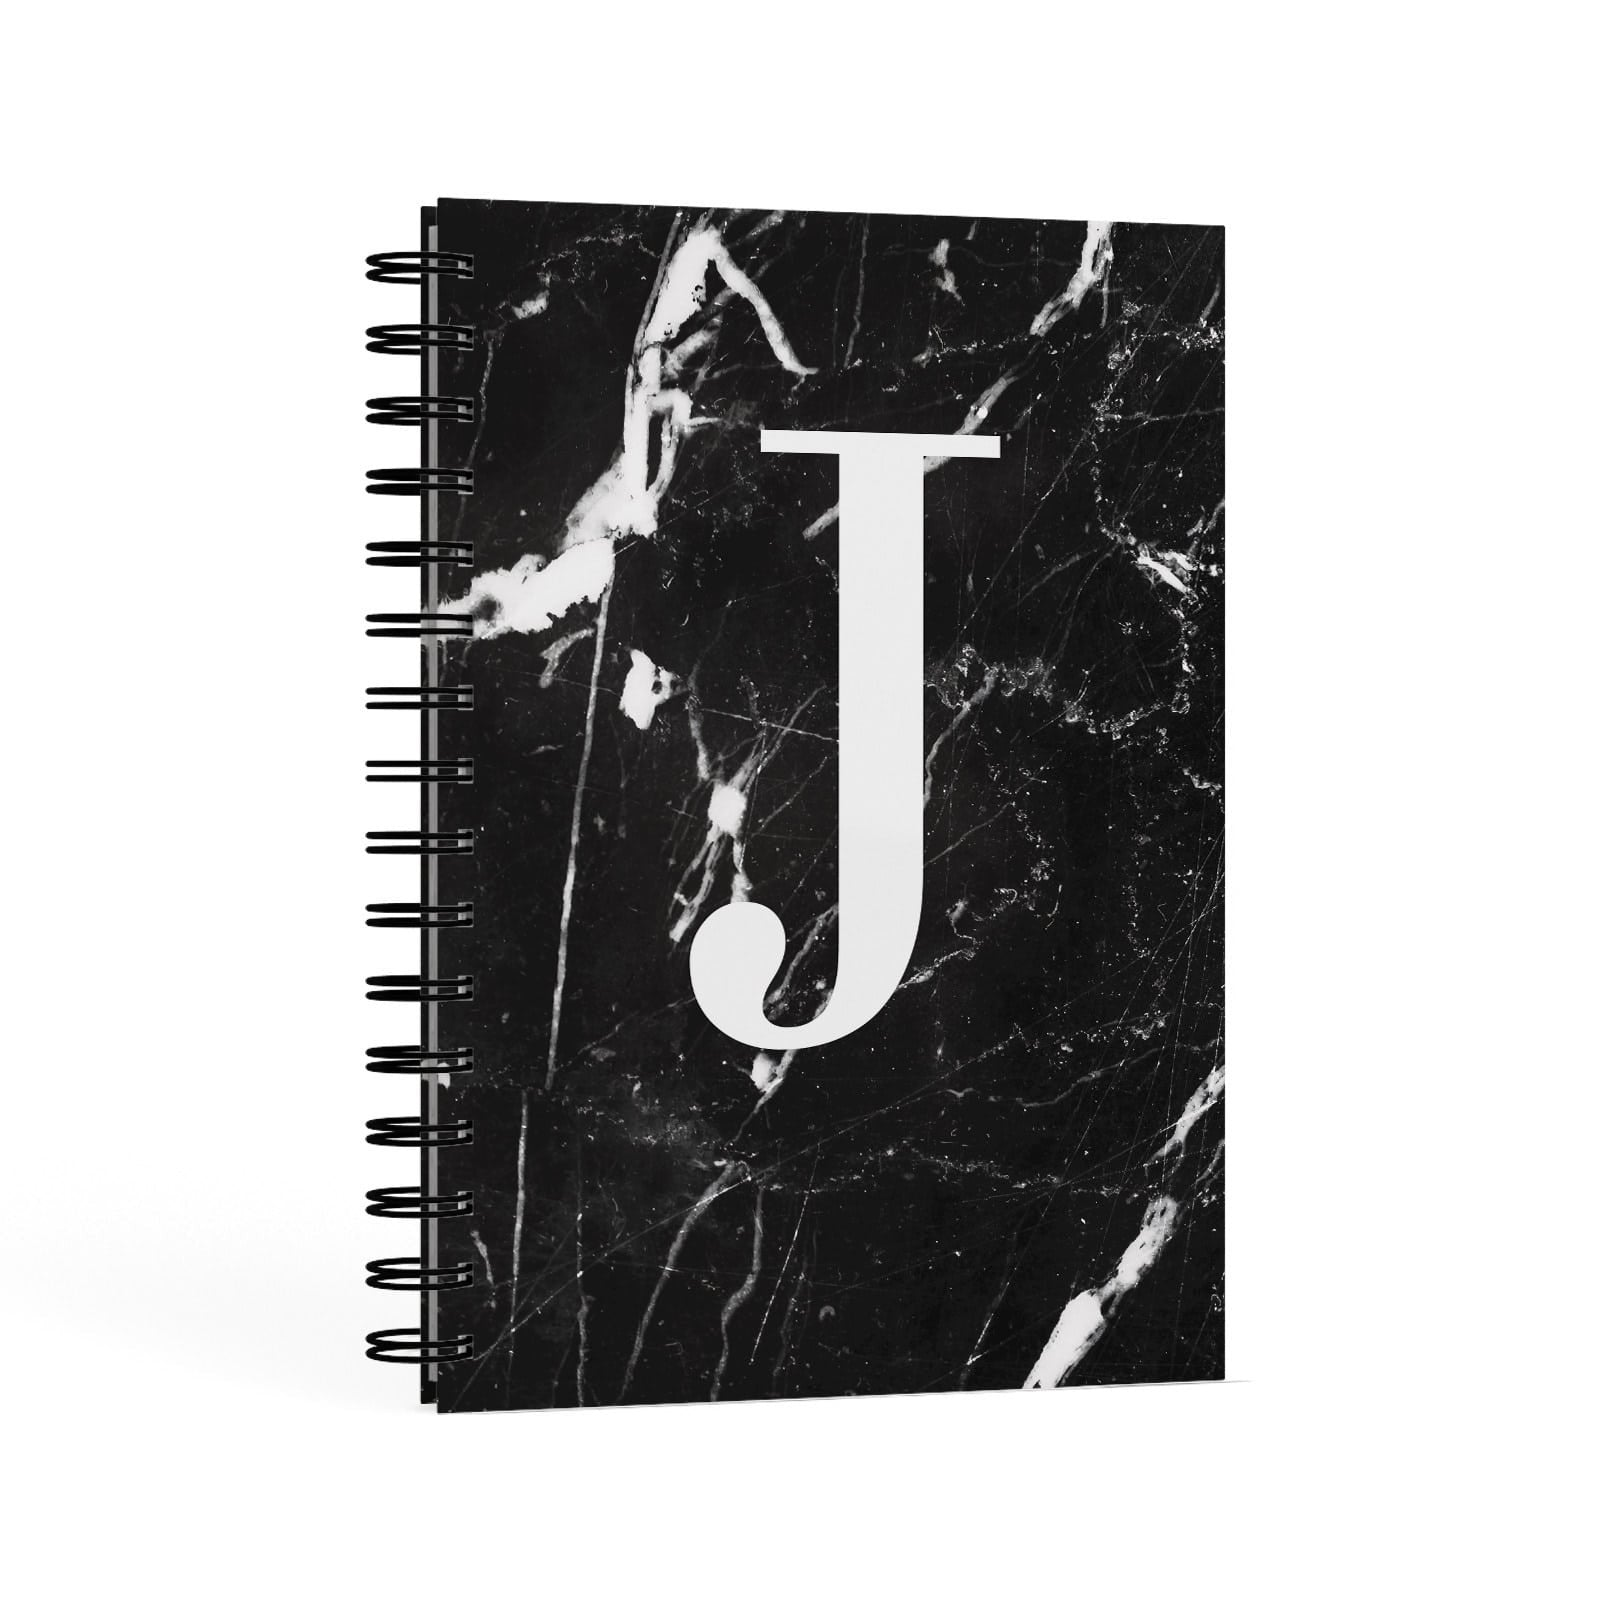 Marble White Initial Personalised A5 Hardcover Notebook Second Side View